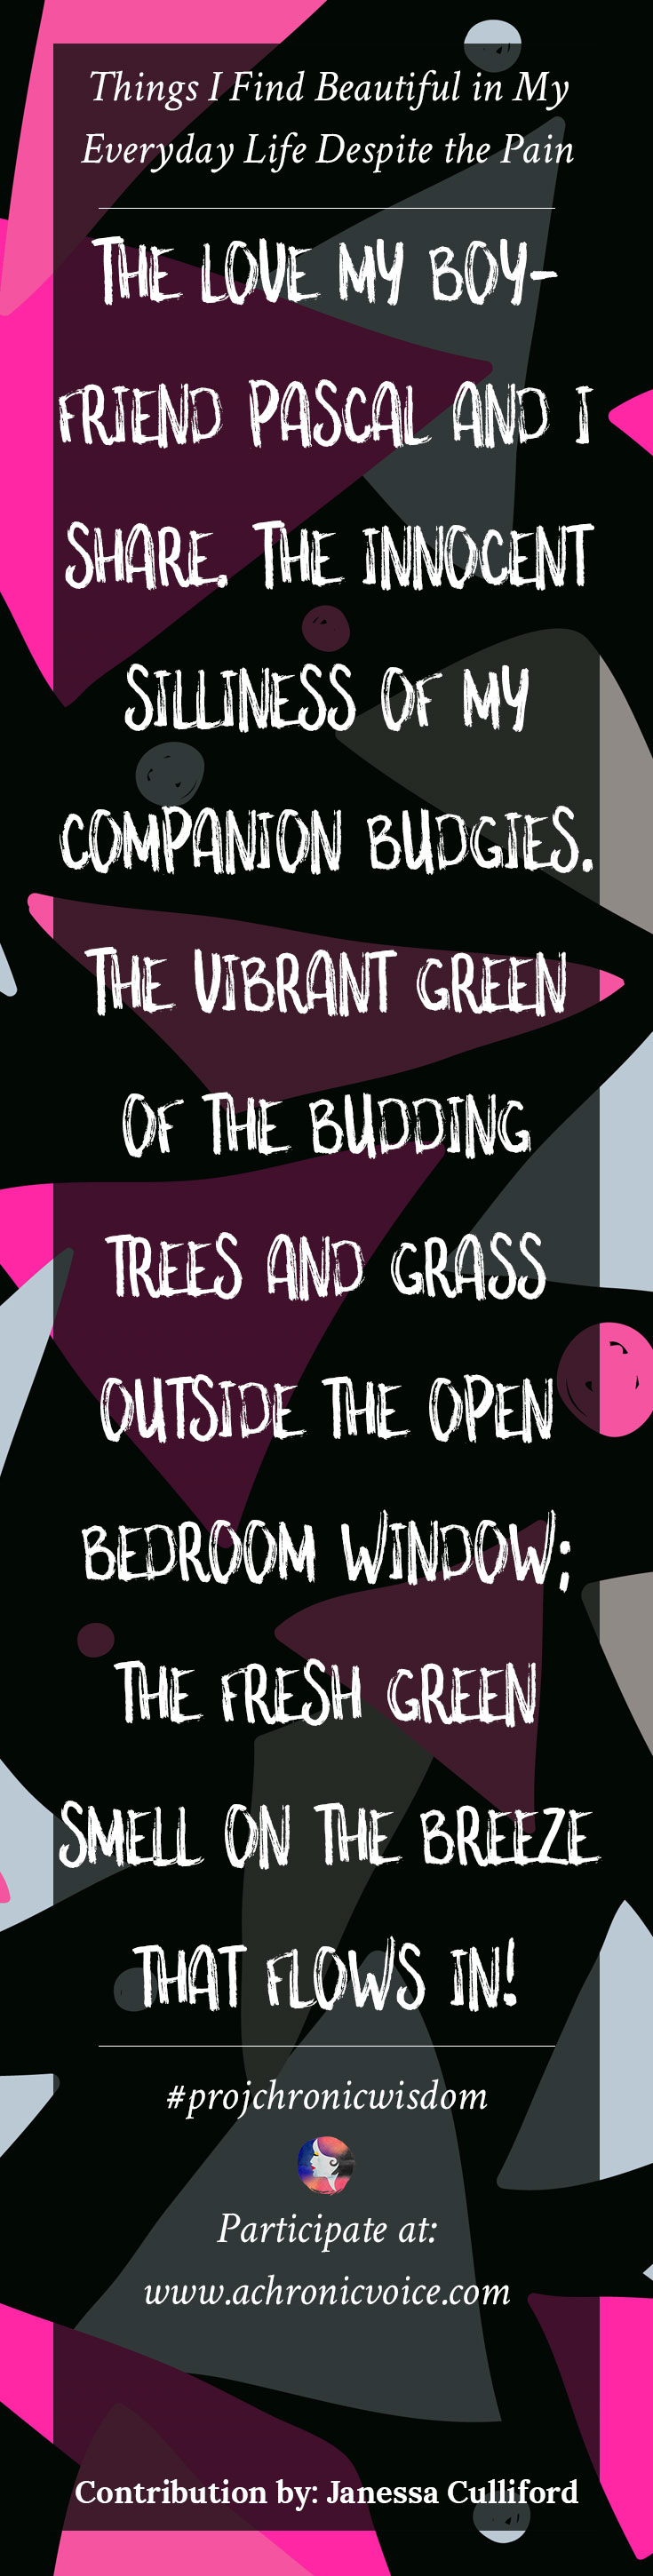 """""""The love my boyfriend Pascal and I share. The innocent silliness of my companion budgies. The vibrant green of the budding trees and grass outside the open bedroom window; the fresh green smell on the breeze that flows in!"""" - Janessa Culliford 